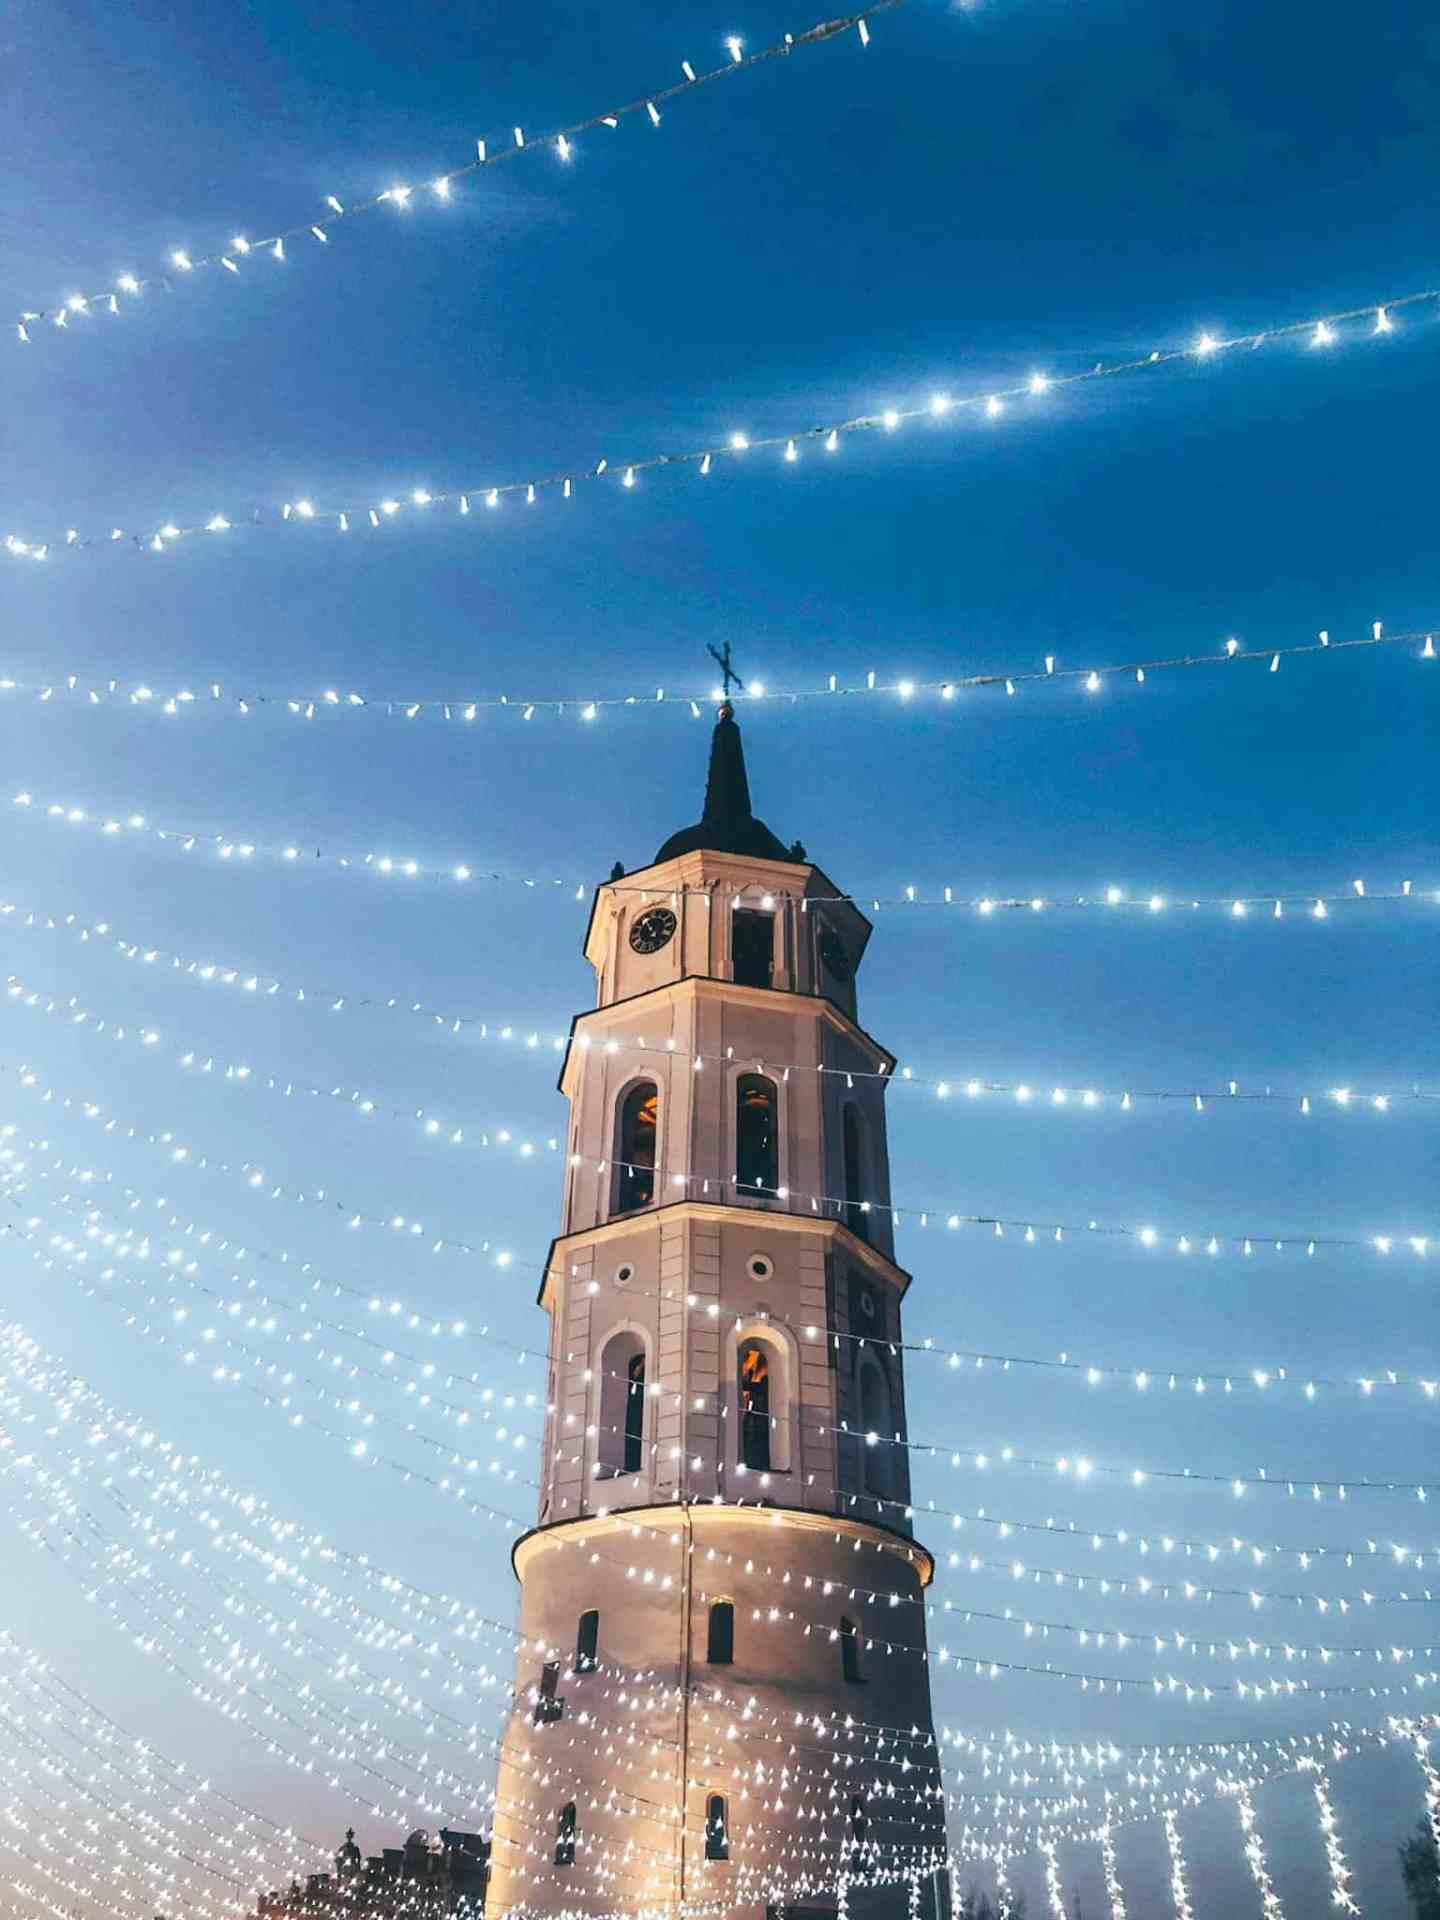 A bell tower covered in fairy lights